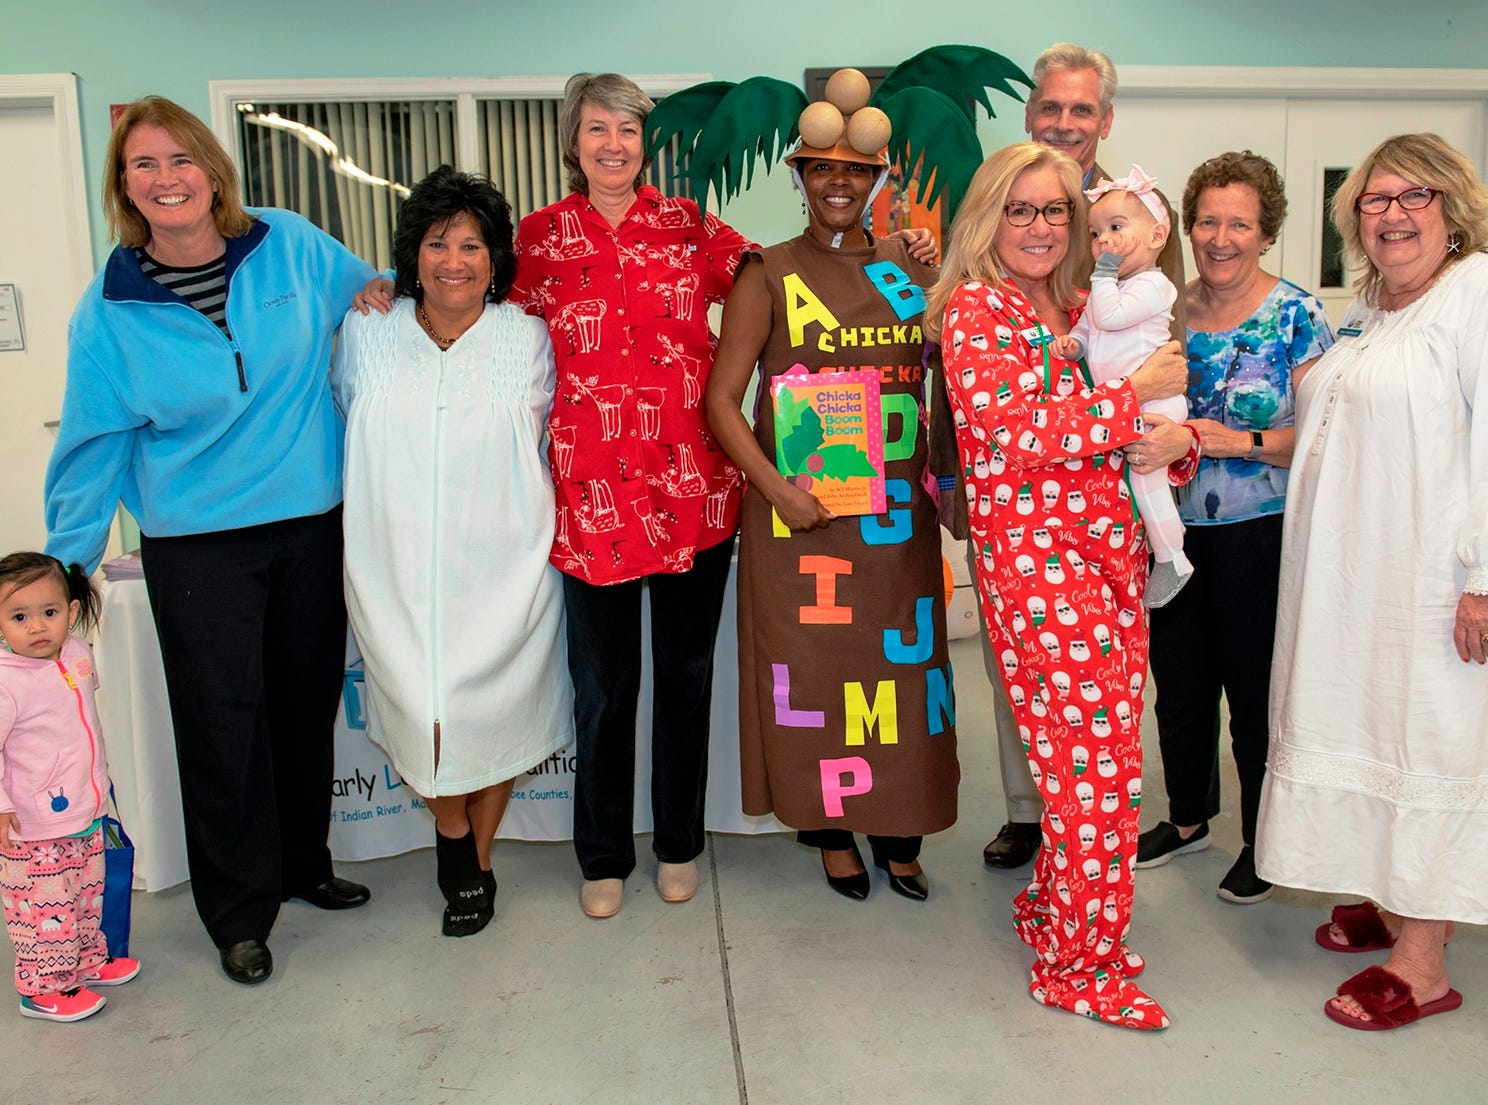 Guest readers, from left, Elly Nguyen; Laura Haase, director of program operations, Children's Service Council of Martin County; Carol Houwaart-Diez, president/CEO, United Way of Martin County; Pat Houston, director of programs, Early Learning Coalition of Indian River, Martin and Okeechobee Counties; Wendy Reynoso, executive director, Dunbar Early Learning Center;  David Heaton, executive director, Children's Services Council of Martin County; Cher Fisher, Helping People Succeed board secretary;  Alden Speedy, Bliss Browne, Helping People Succeed board president and Suzy Hutcheson, president/CEO of Helping People Succeed at Pajama Jam to benefit The Language & Literacy Connection.